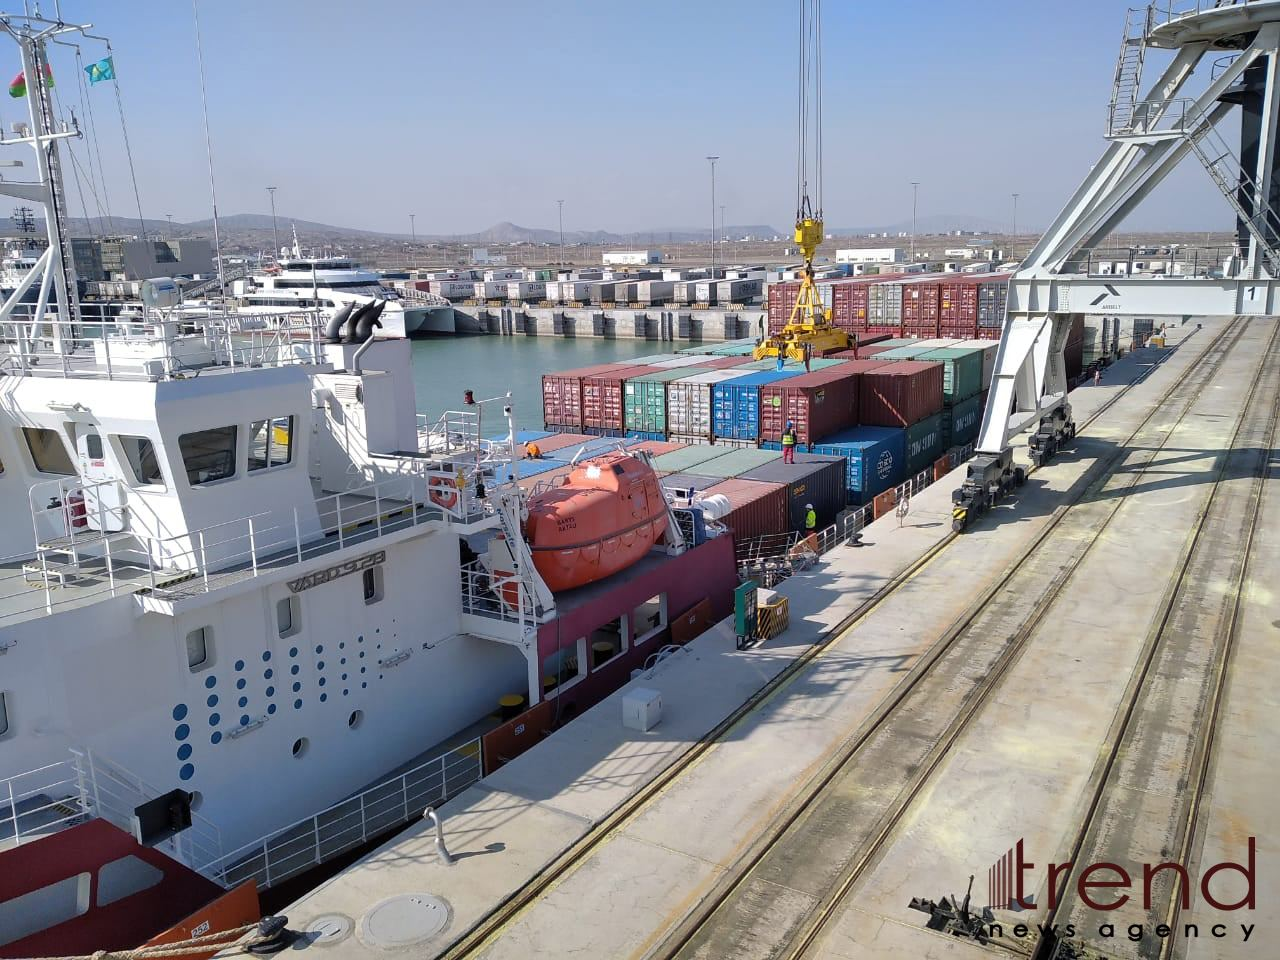 Azerbaijan's advanced port infrastructure could serve for co-op dev't with Germany